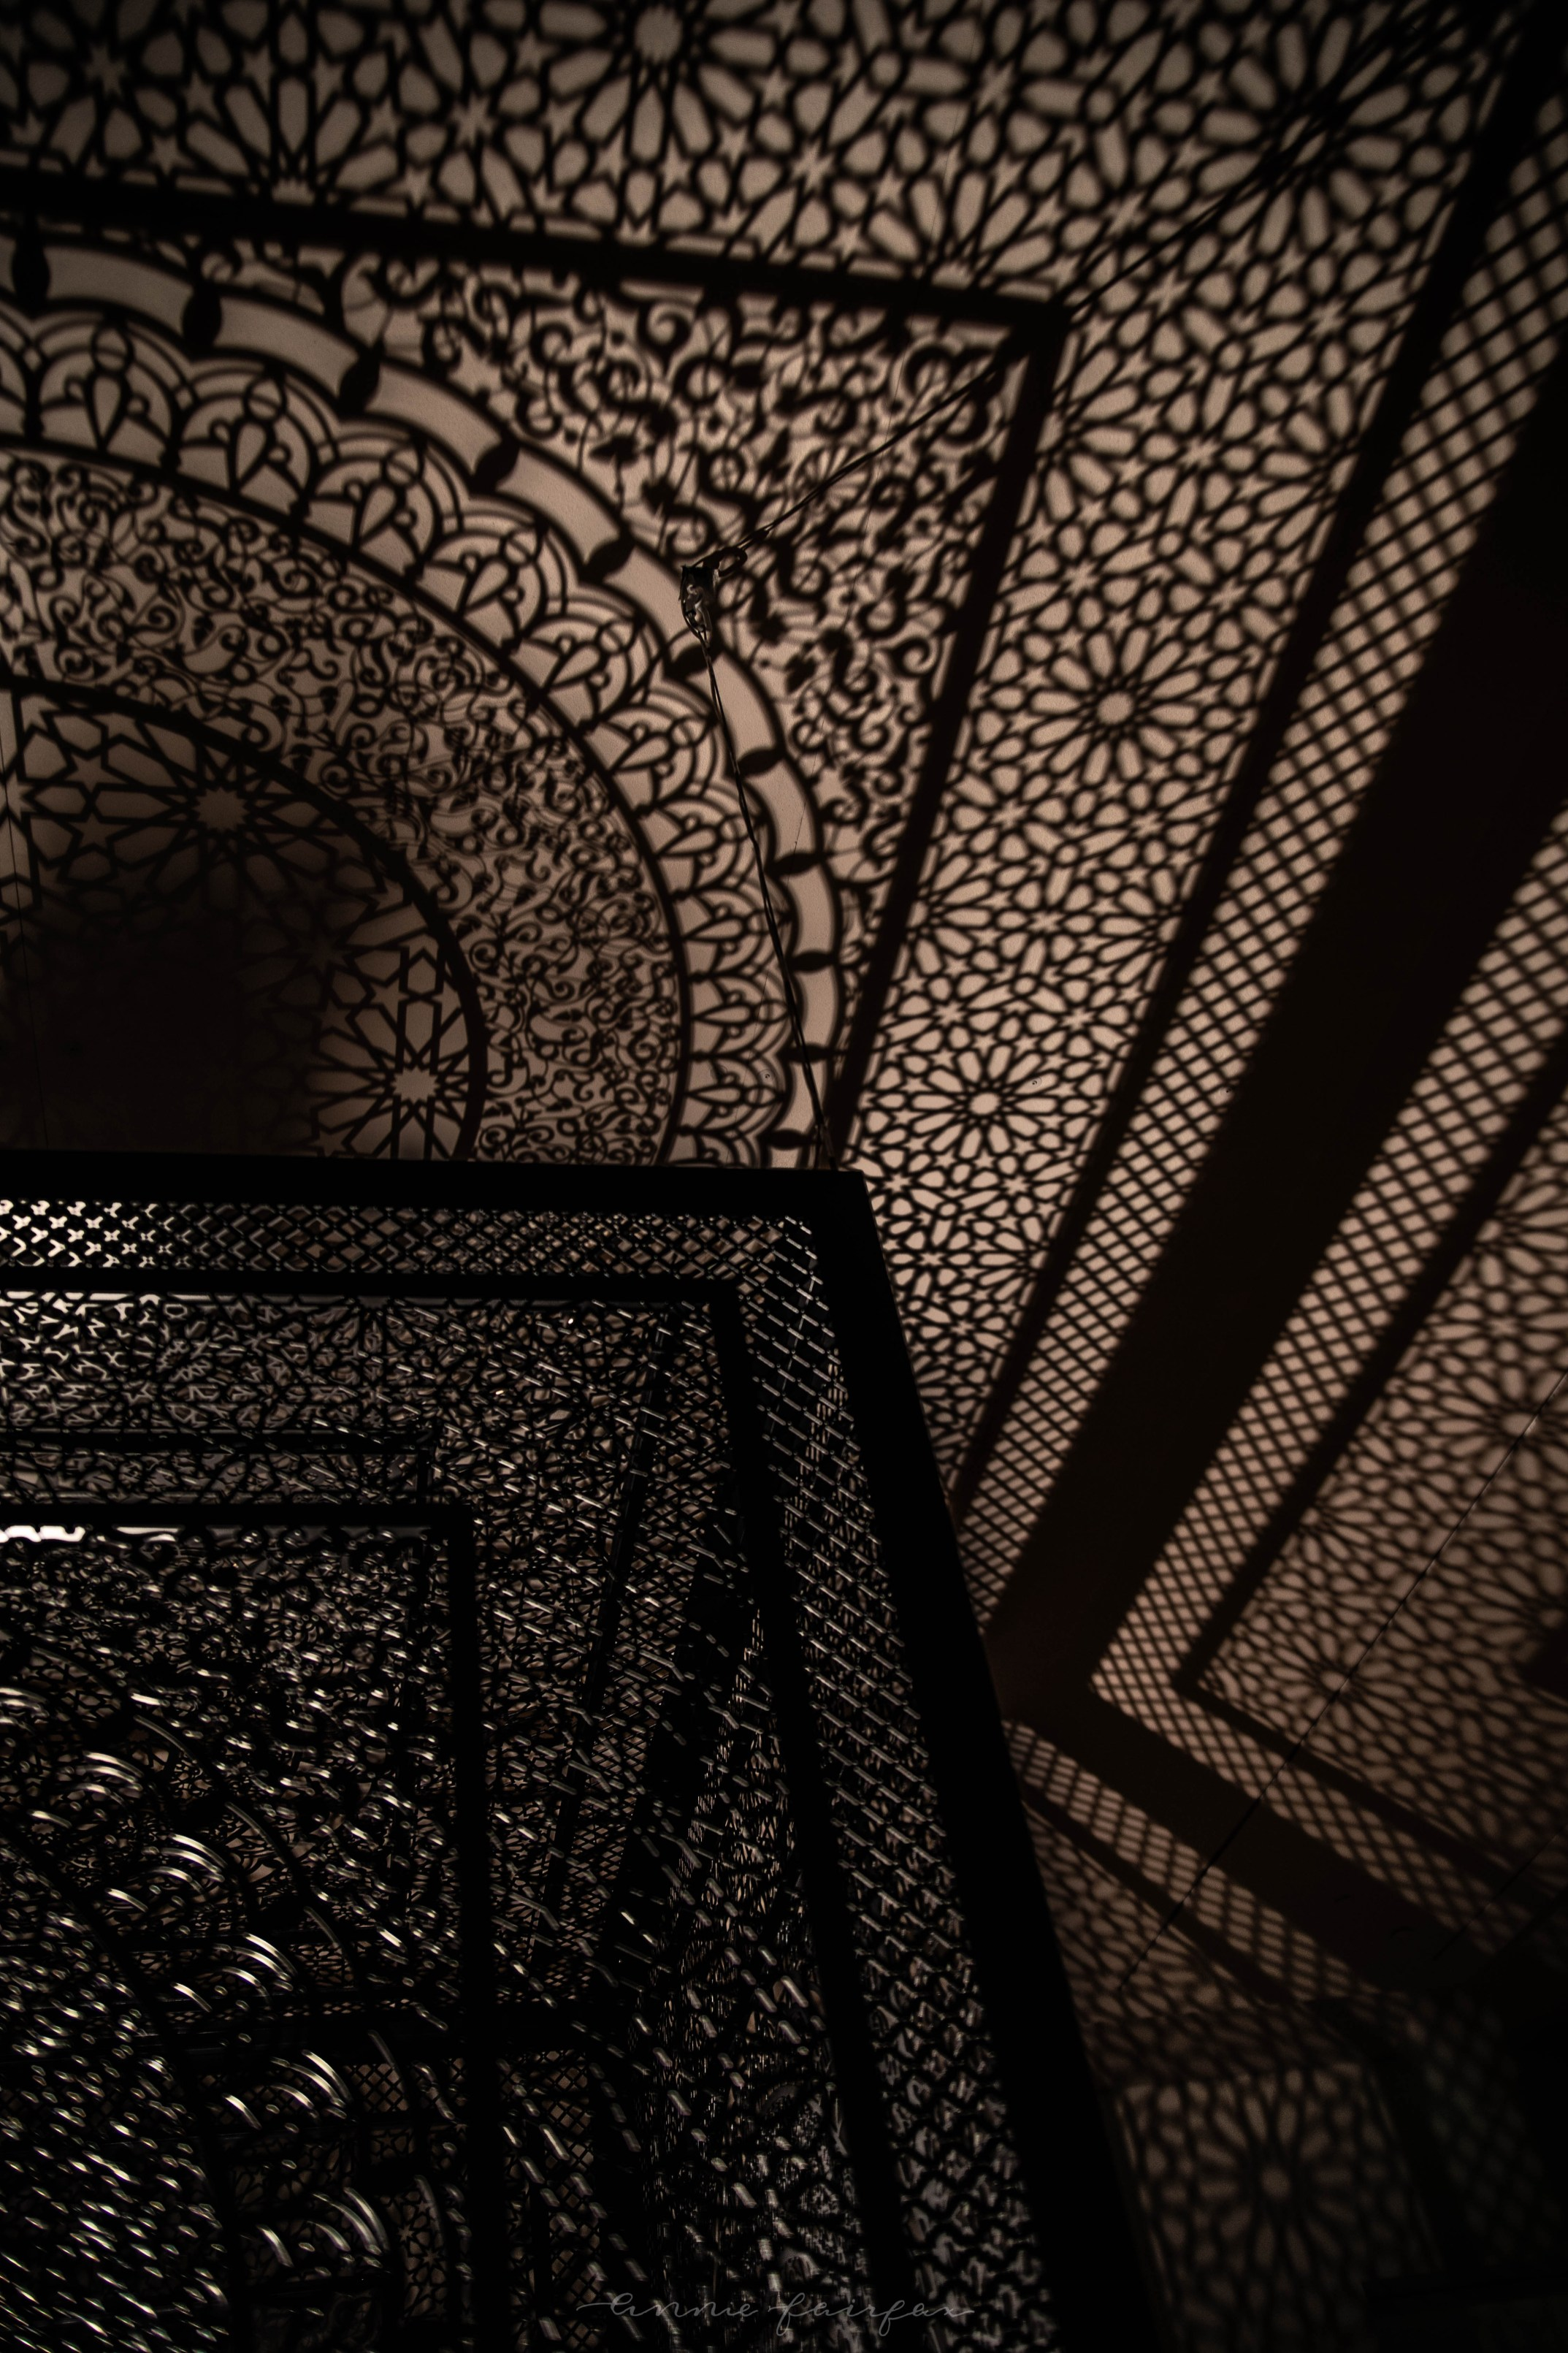 Anila Quayyum Agha: Intersections Grand Rapids Art Museum Art Prize Winner Shadows and Light Negative Space